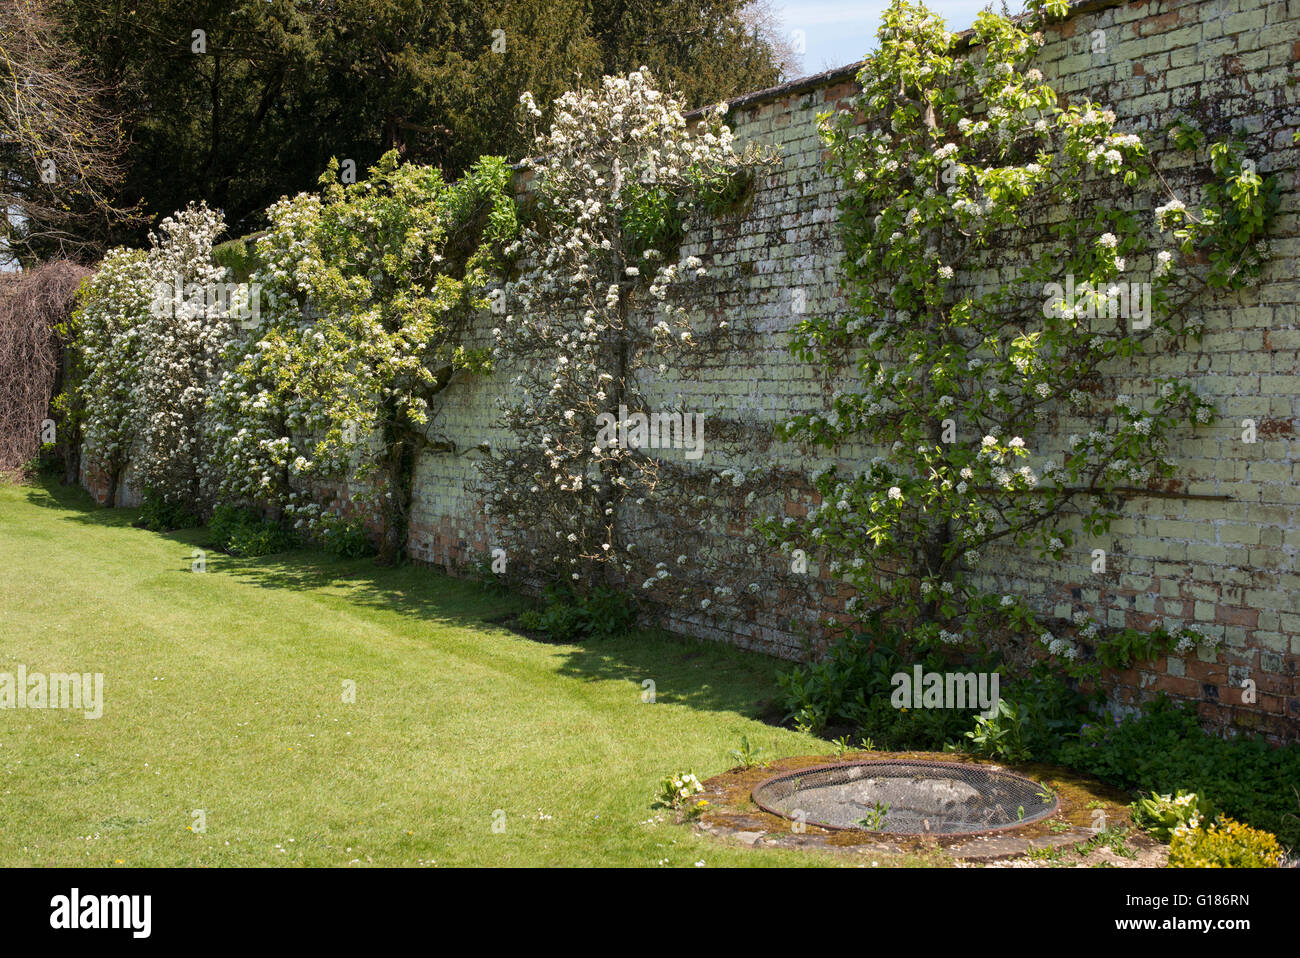 Espalier Fruit Trees In Blossom Against The Walled Garden At Rousham House  And Garden. Oxfordshire, England